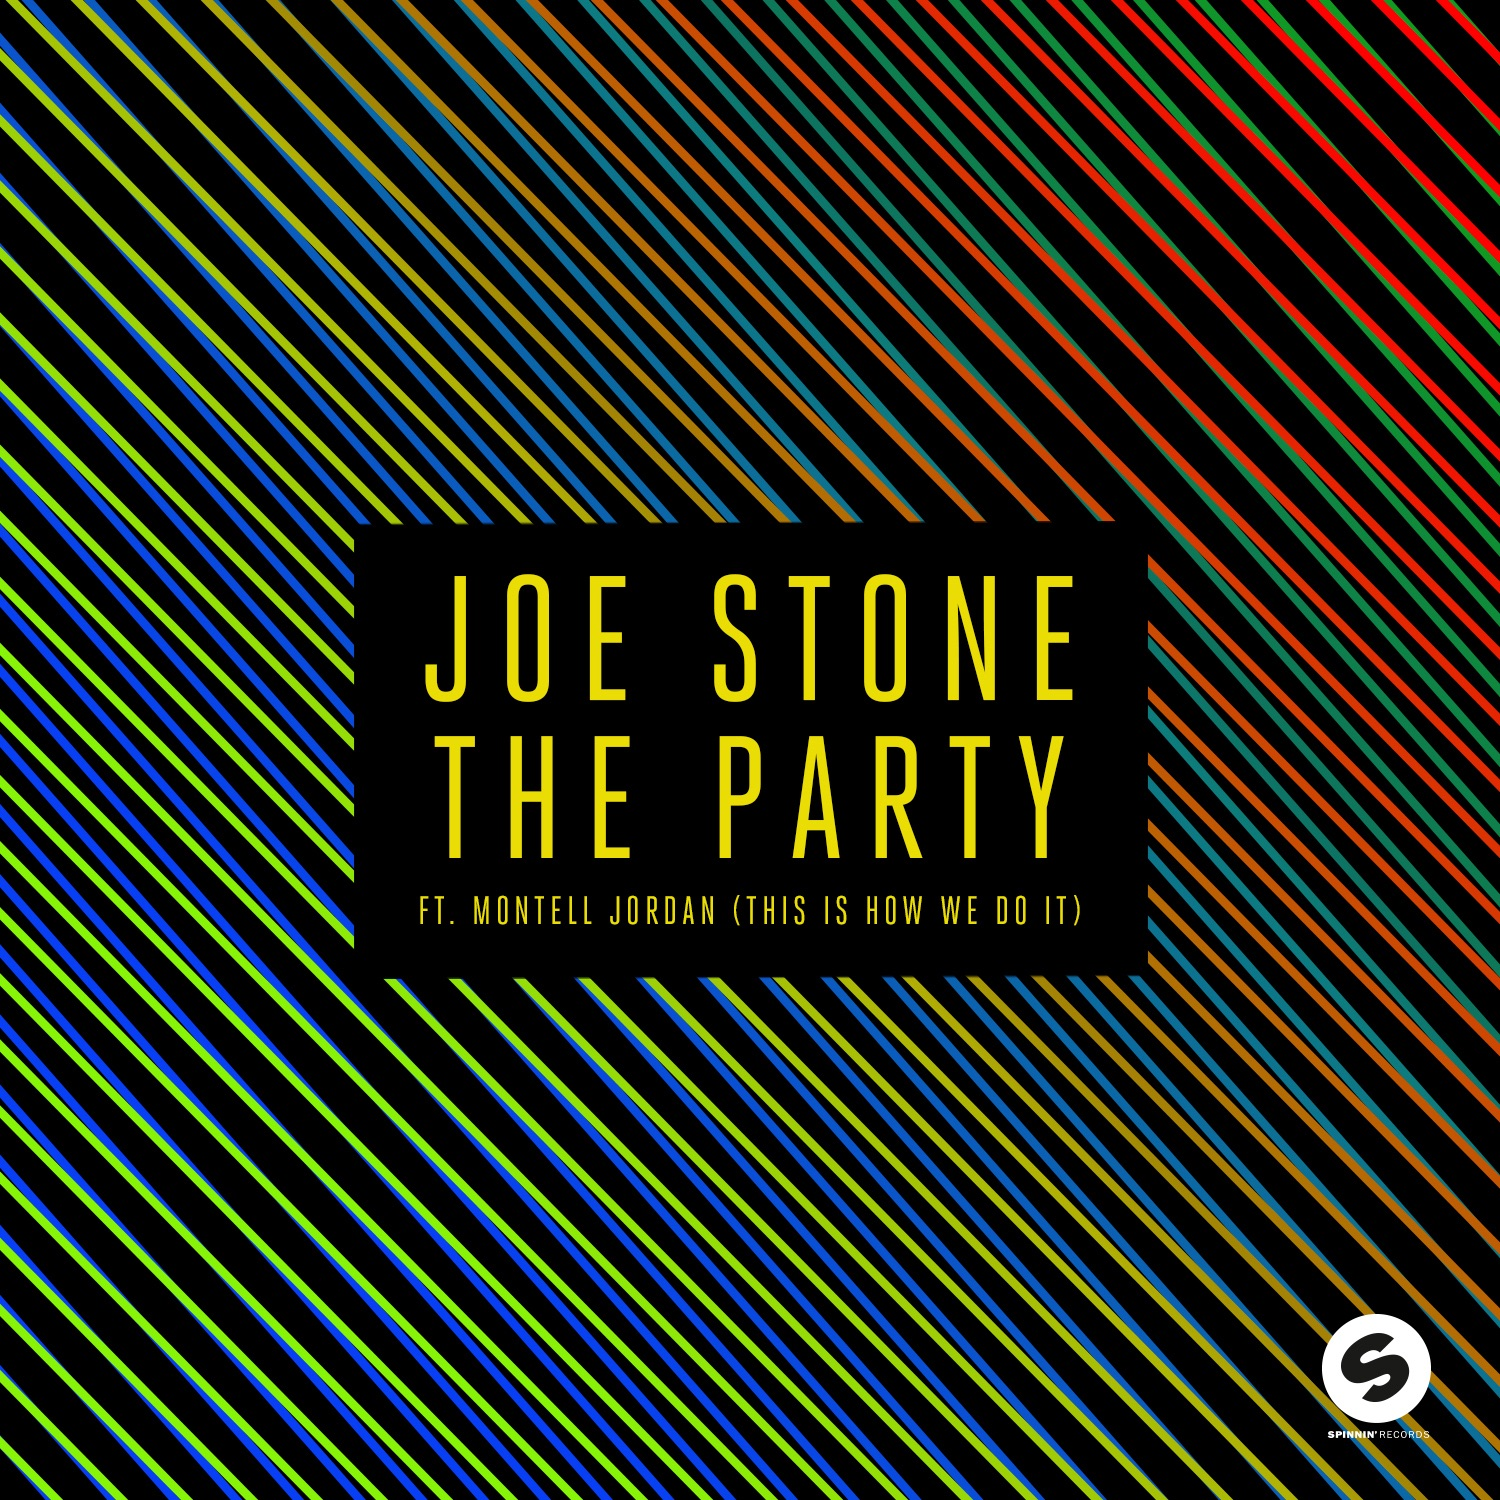 The party this is how we do it feat montell jordan single by